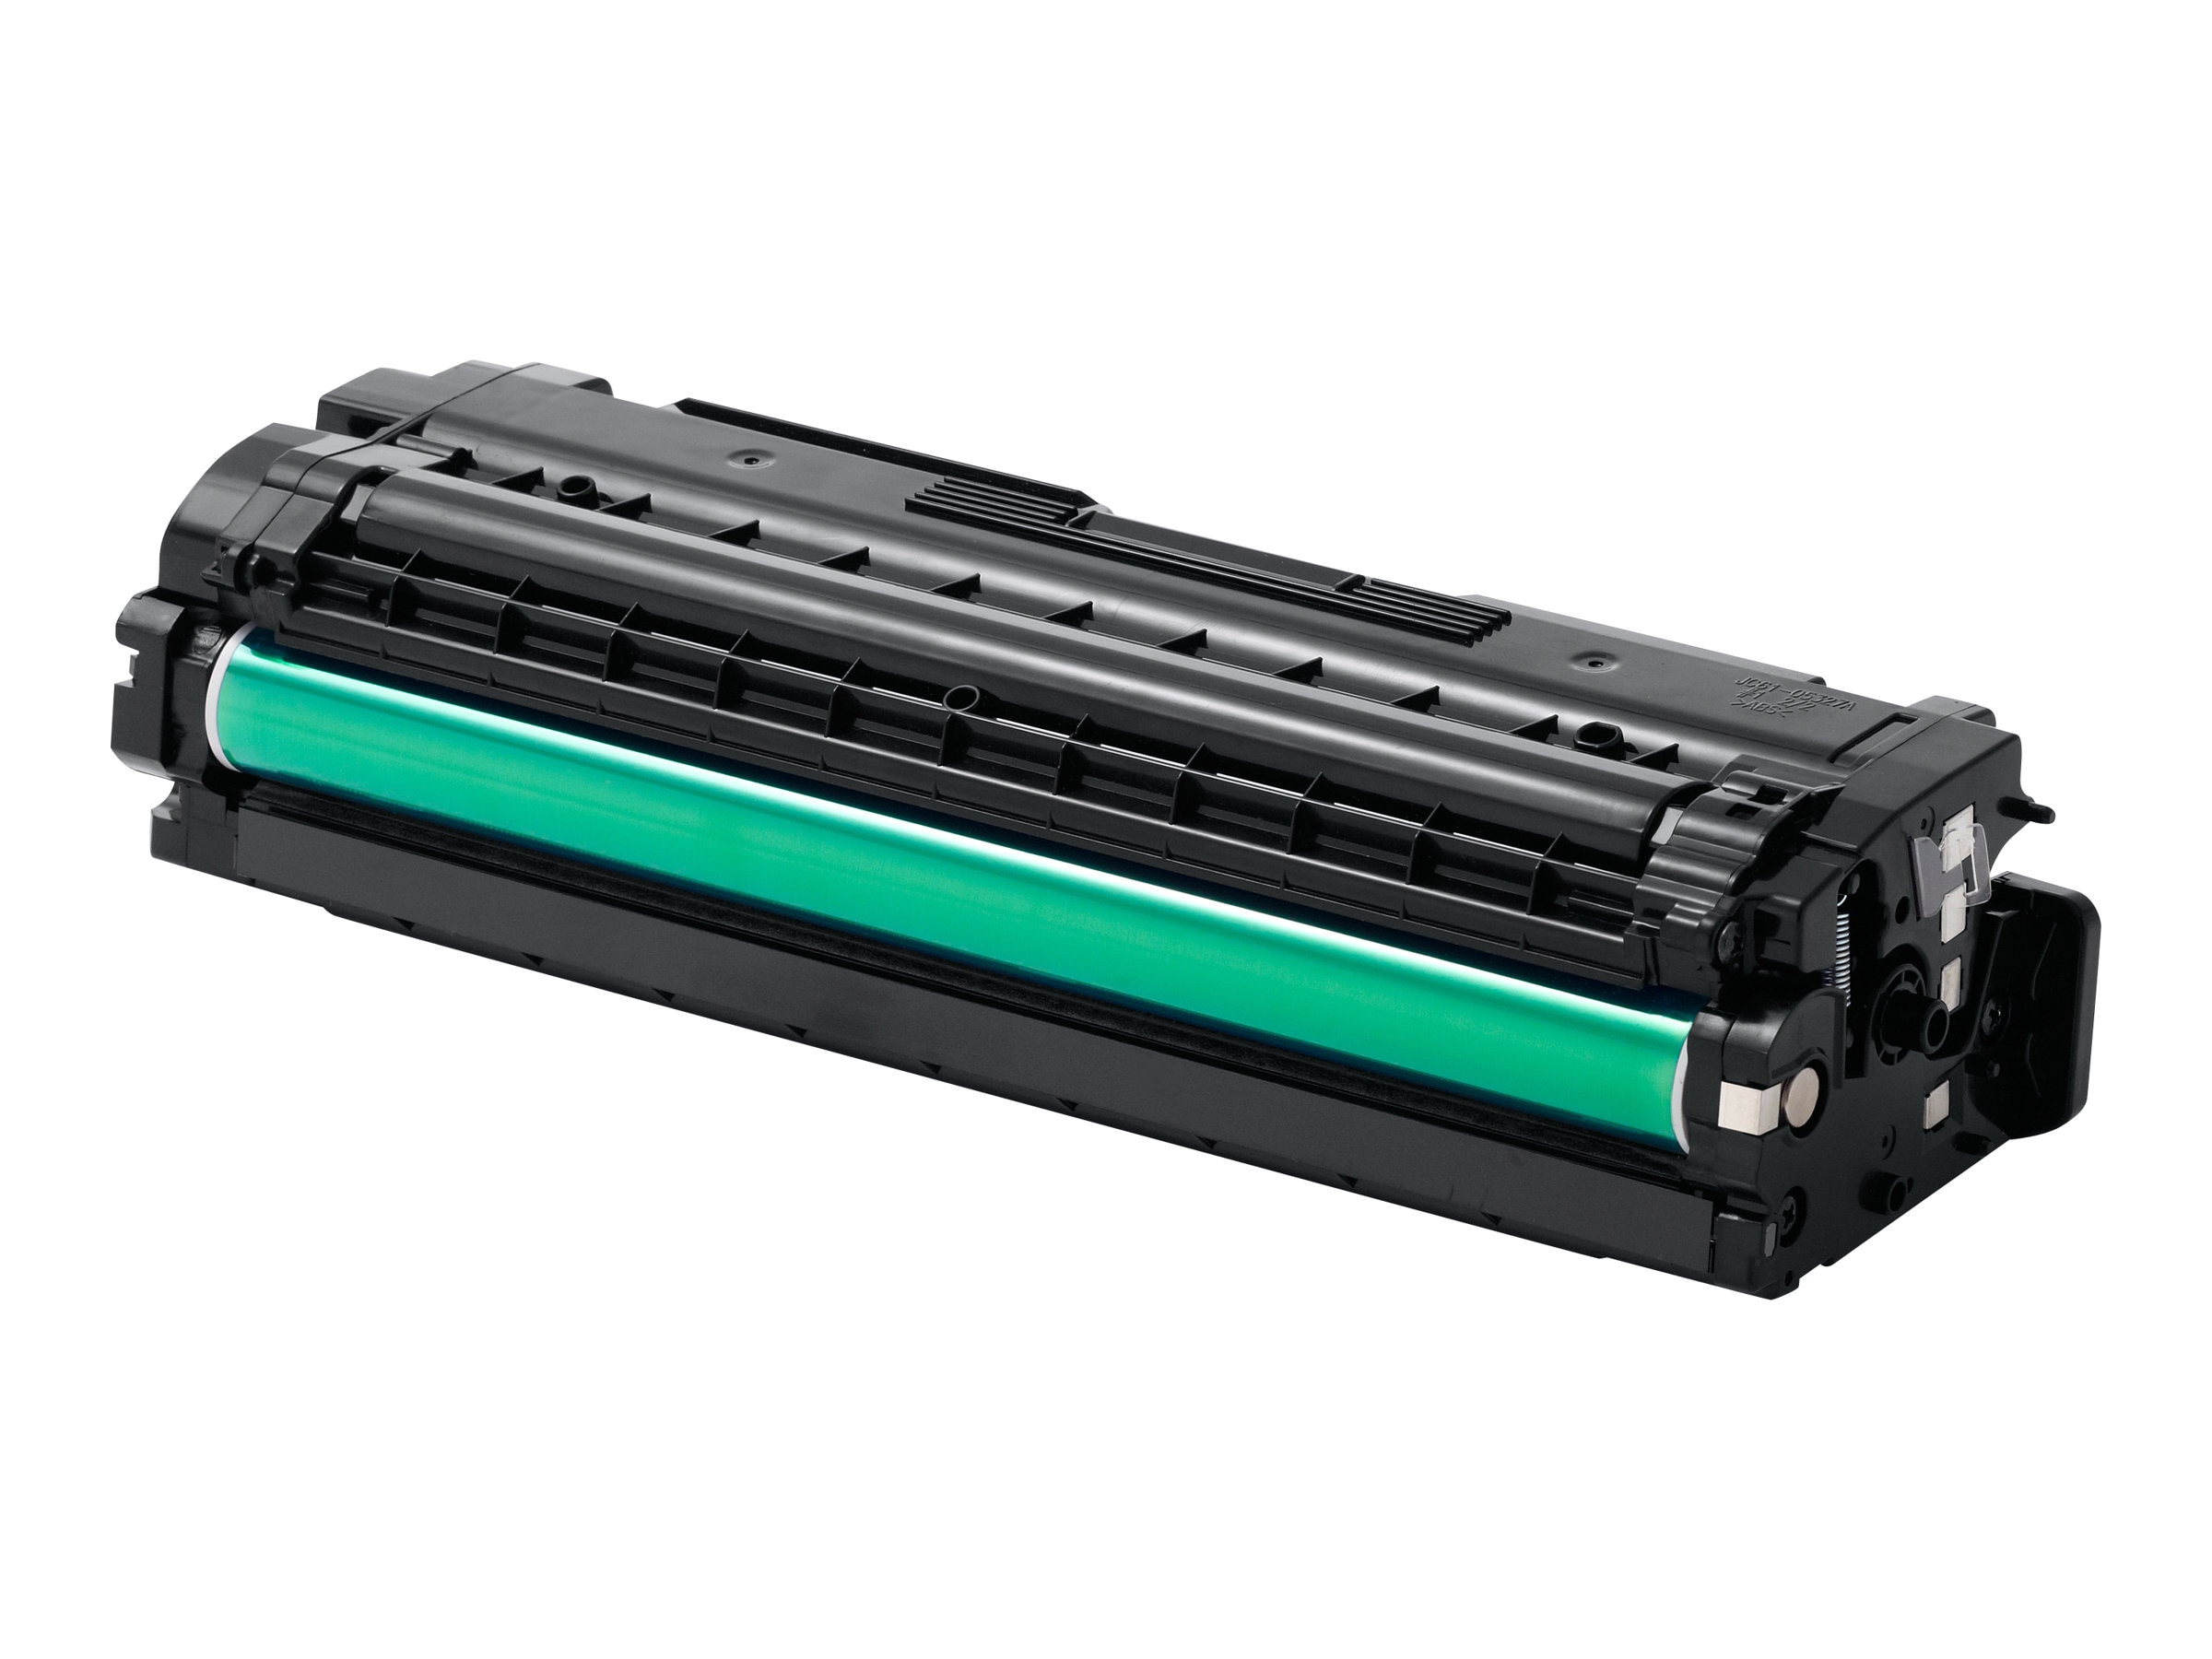 Samsung Cyan Toner Cartridge for CLP-680ND Color Laser Printer & CLX-6260FW & CLX-6260FD Color MFPs